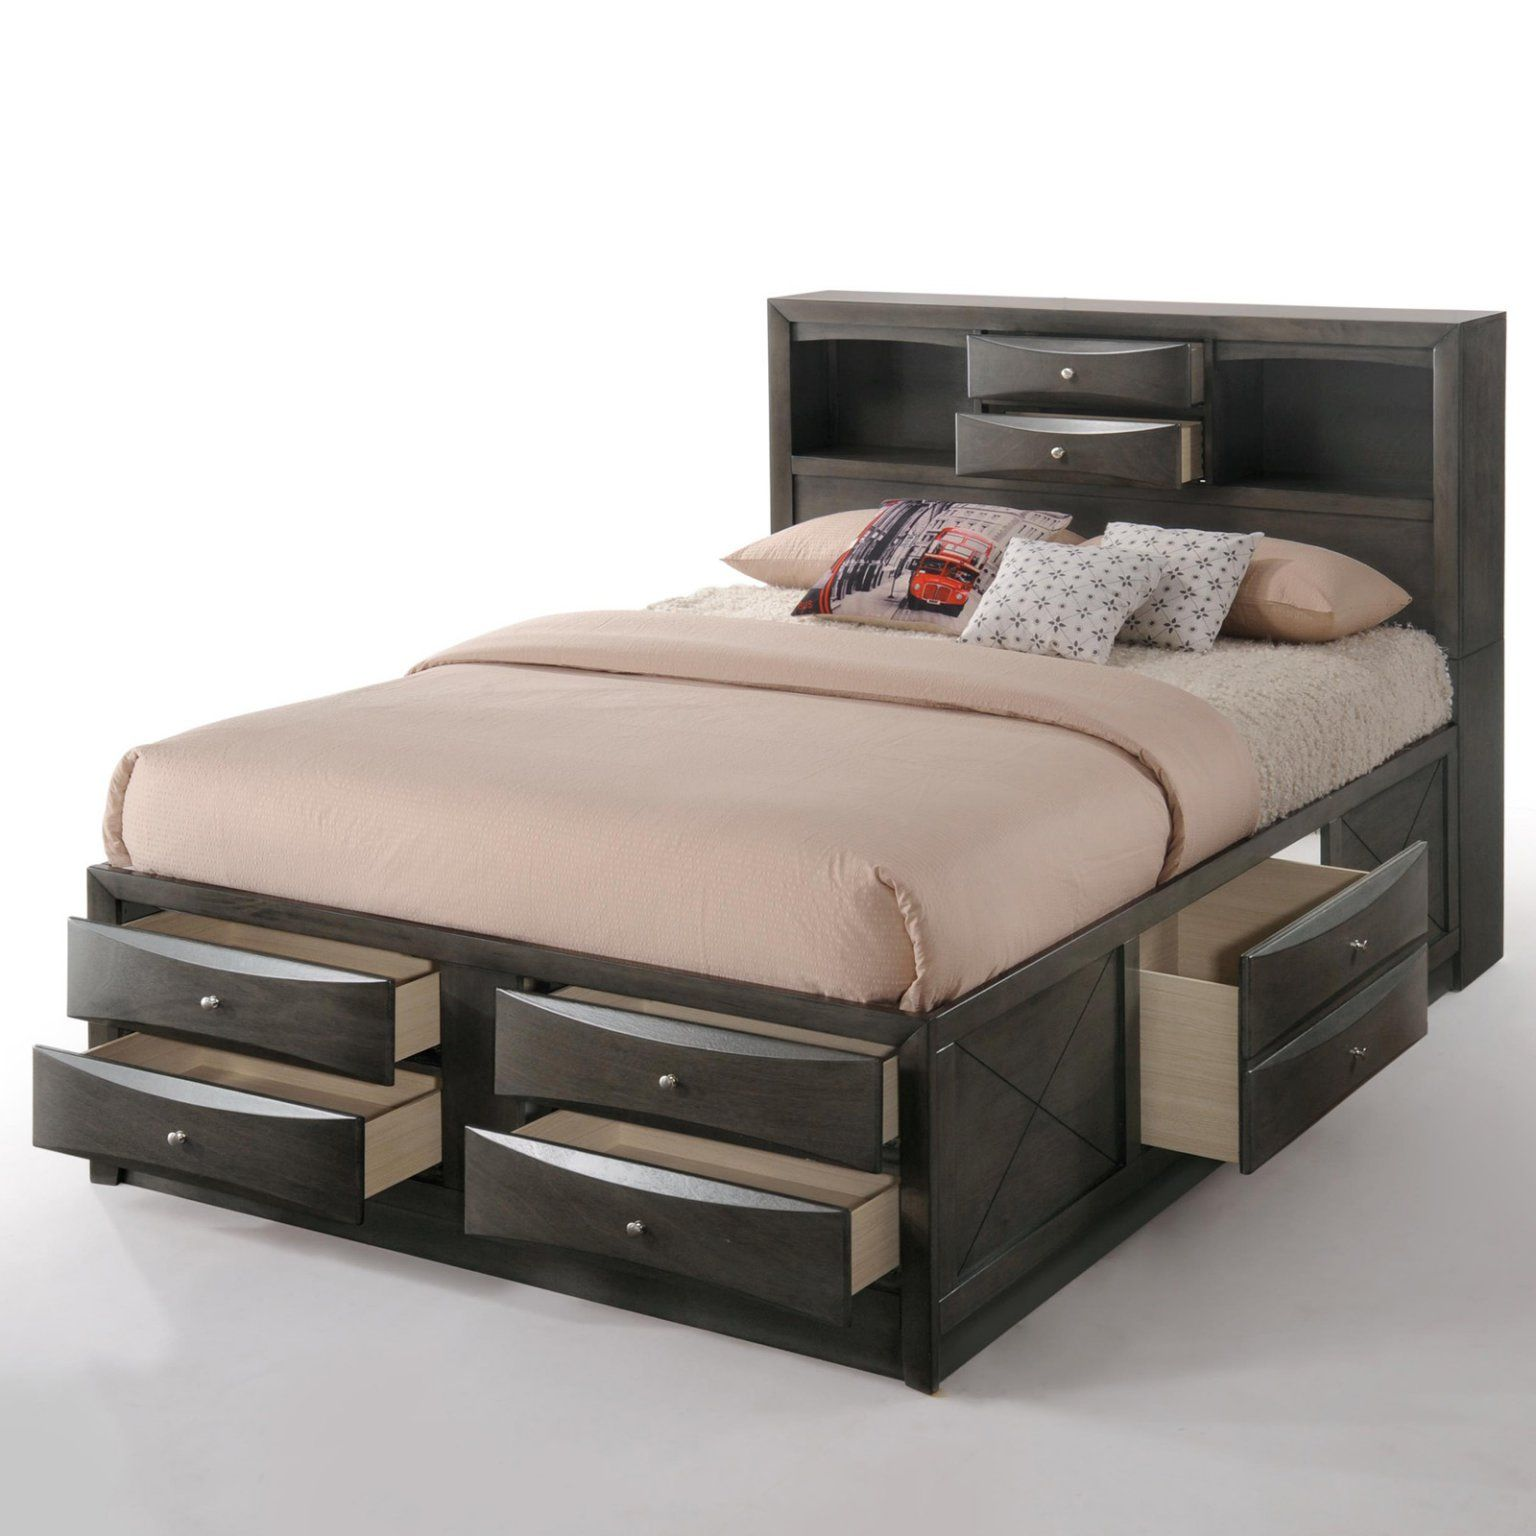 Acme Furniture Ireland Platform Bed Storage bed queen